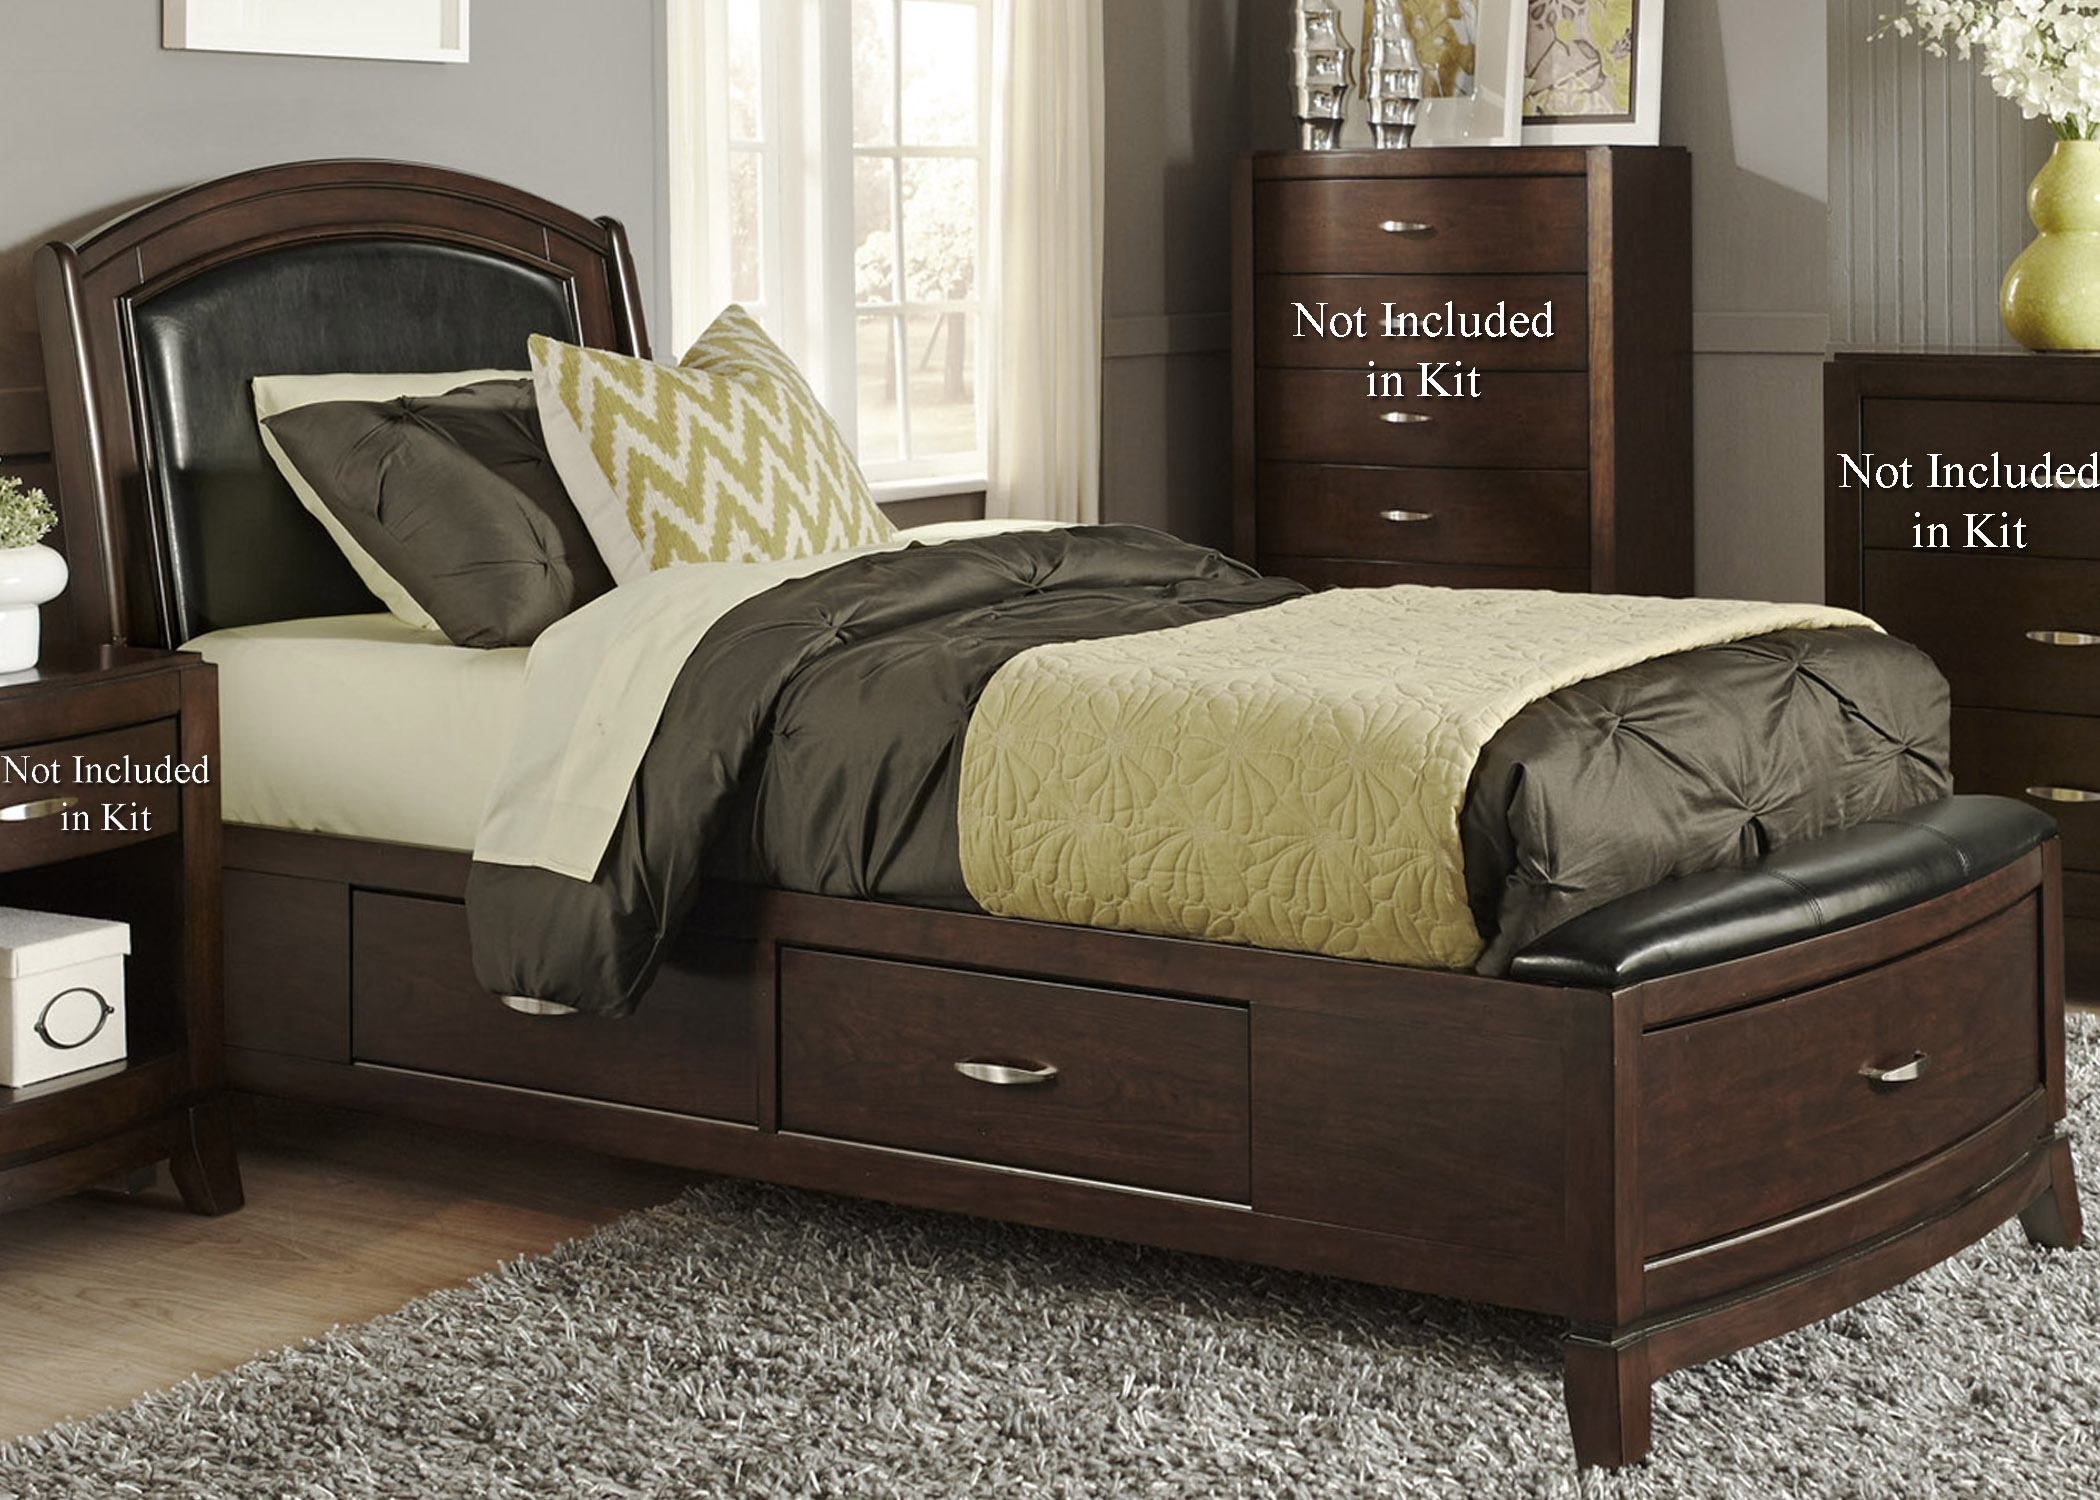 Liberty Furniture Avalon Full One Sided Storage Bed  - Item Number: 505-YBR-F1S